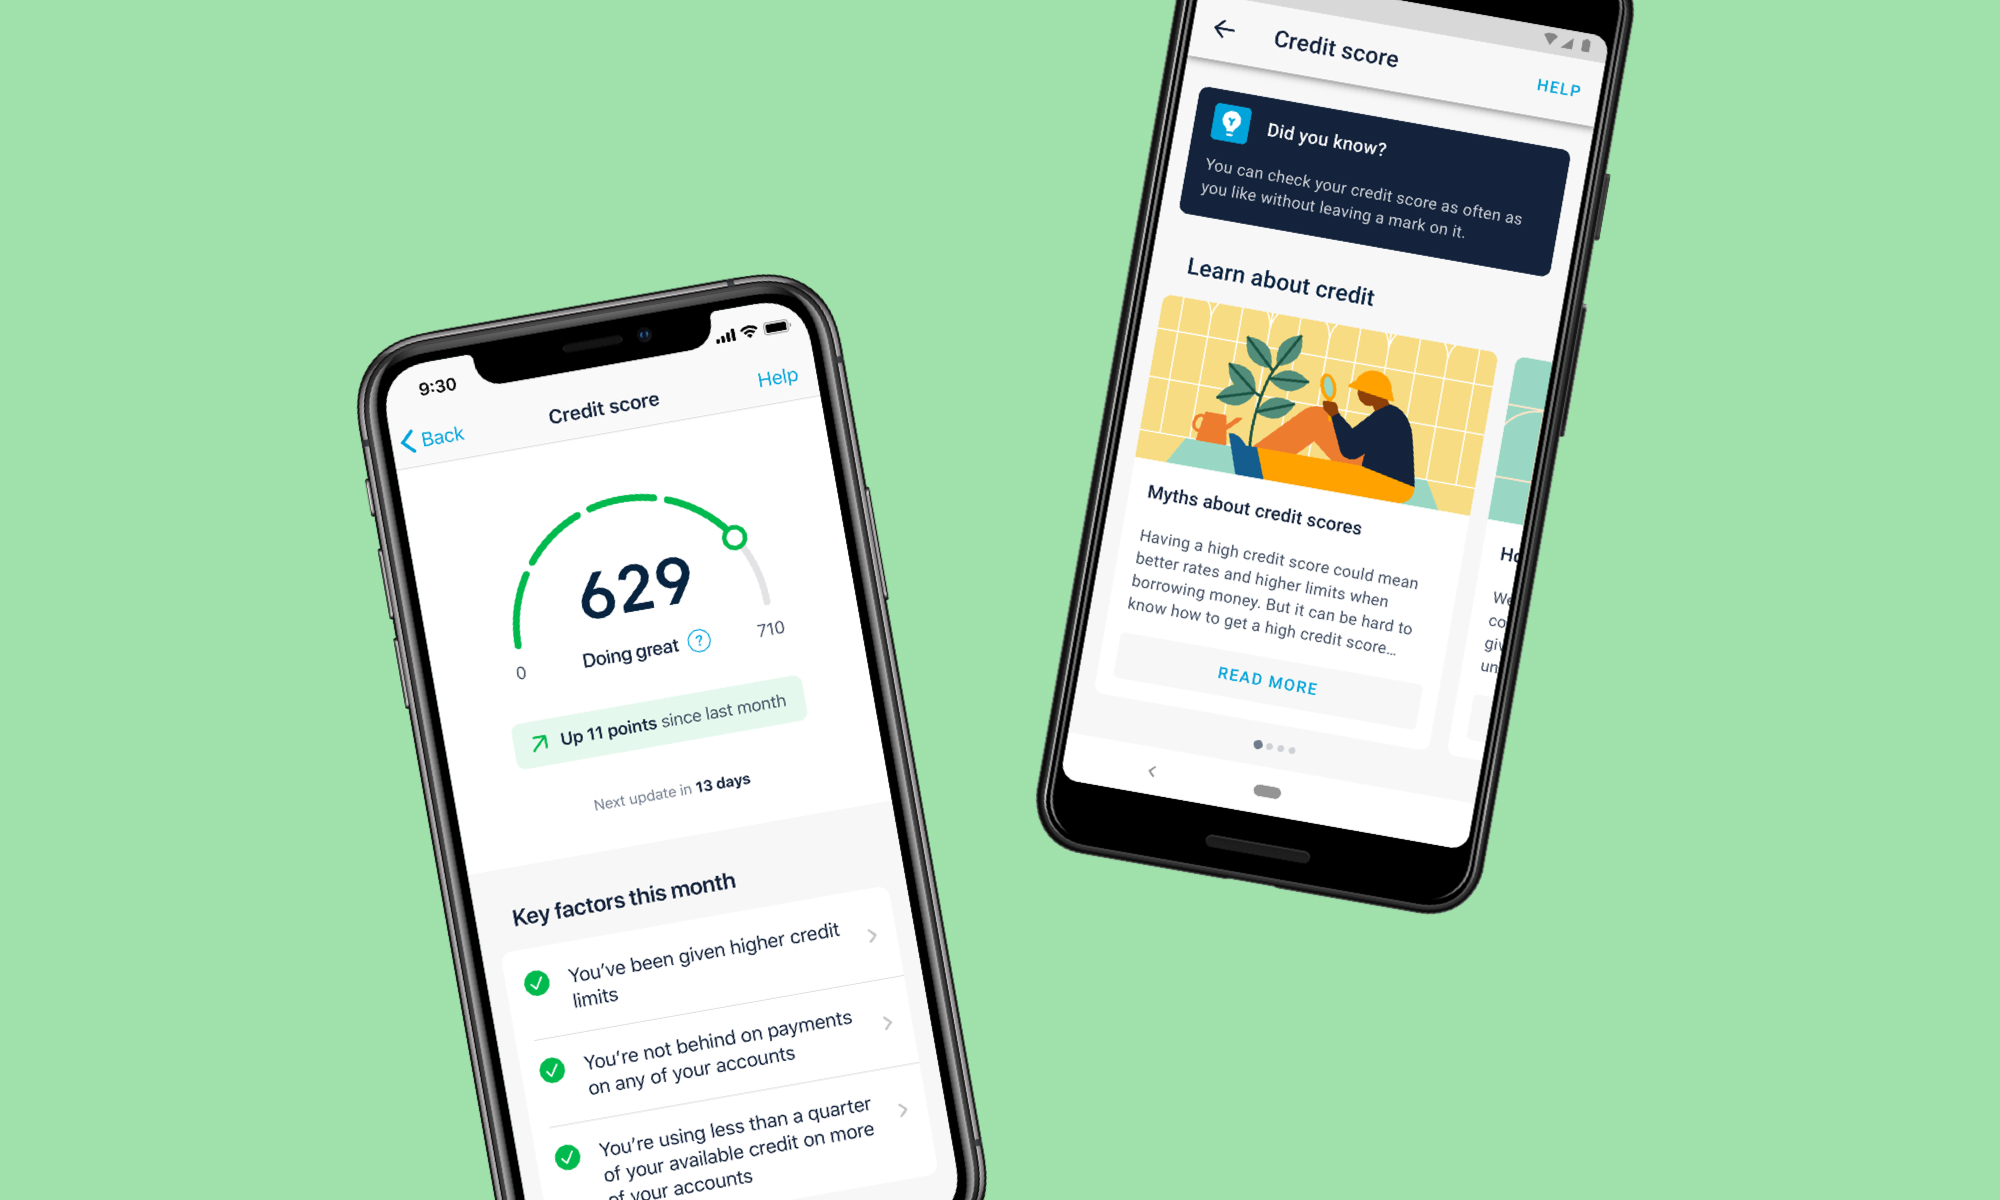 Two screens of the credit score interface shown on device